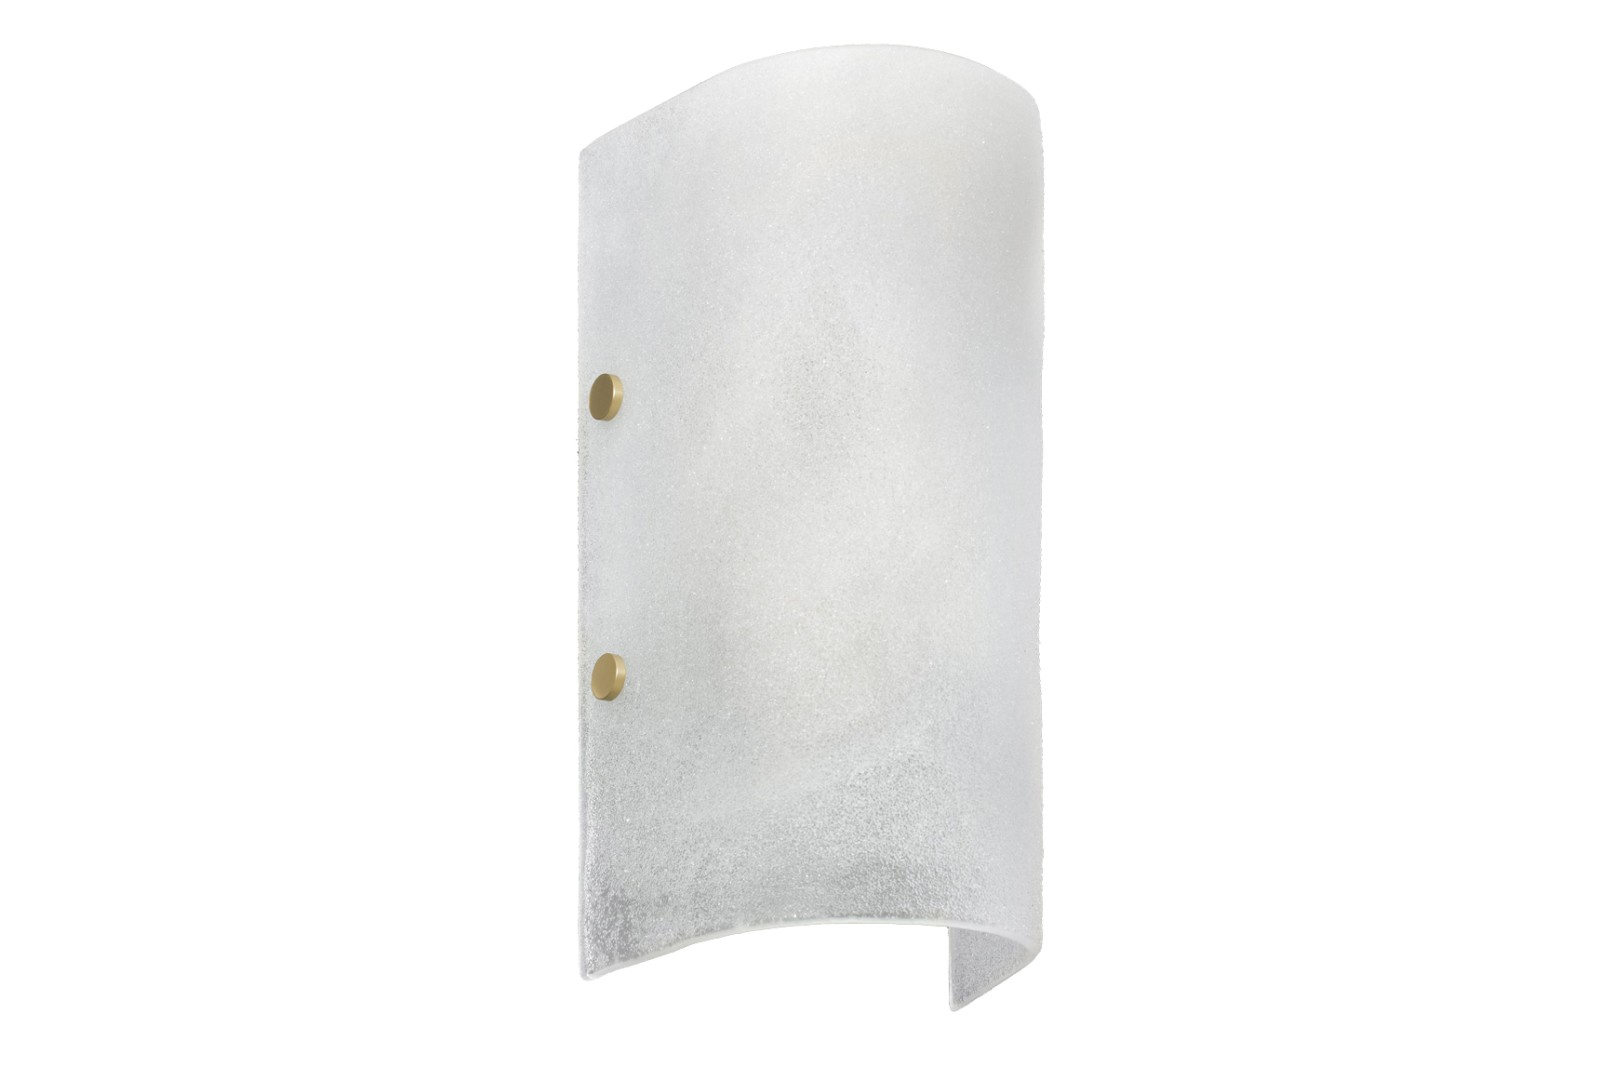 Whistler Wall Light Fritted glass with satin brass details